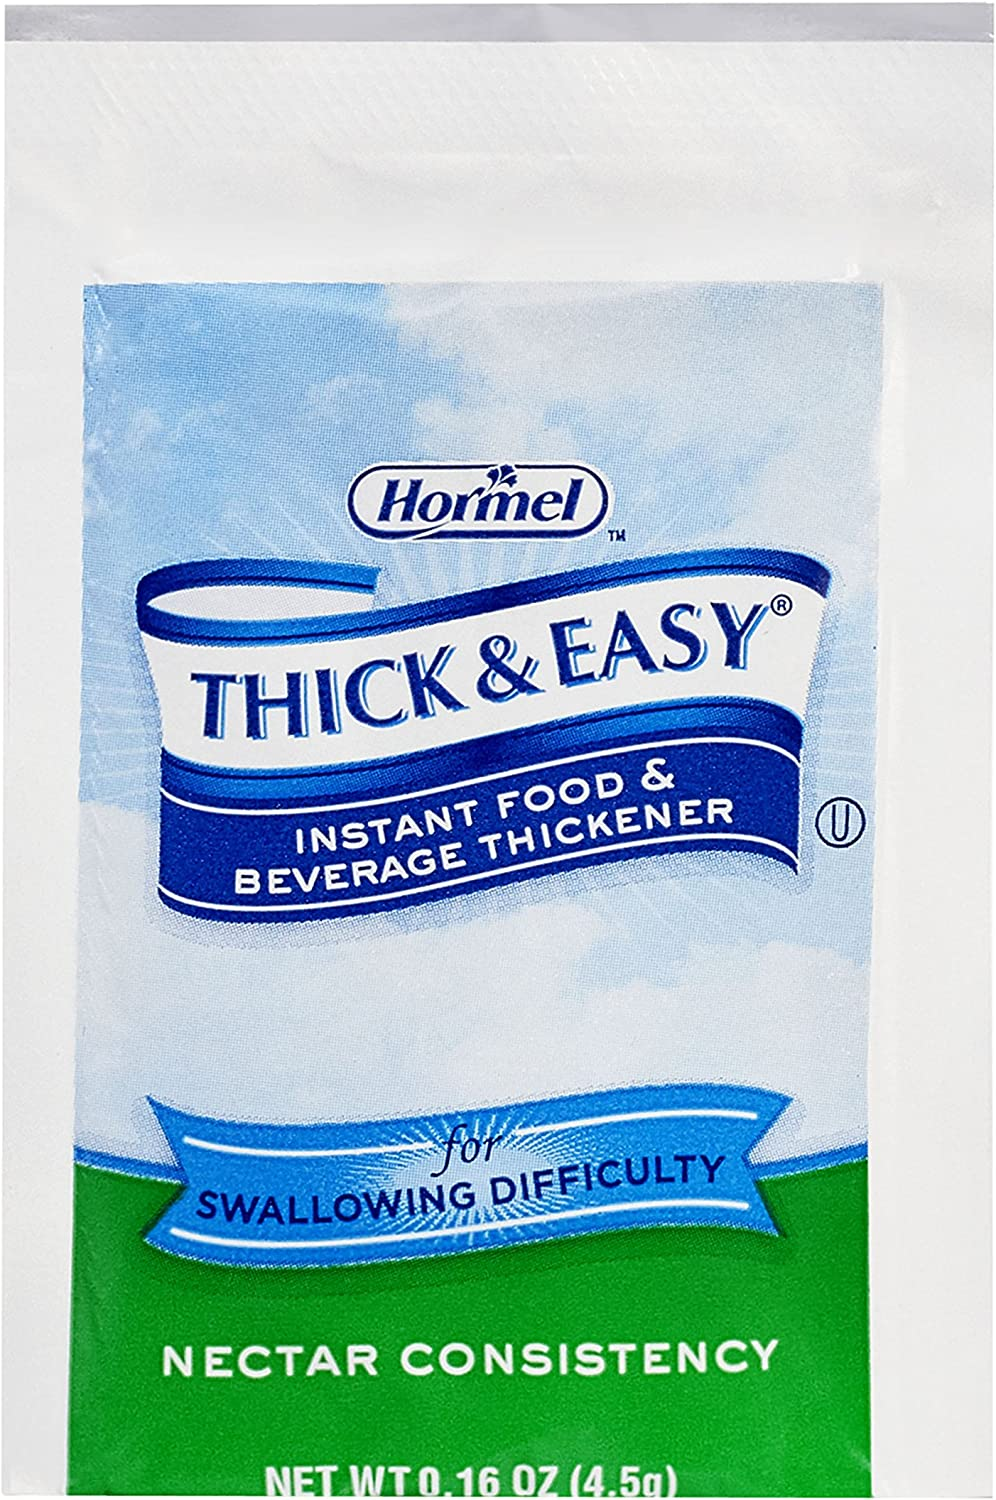 Thick & Easy Instant Food & Beverage Thickener, Nectar Consistency, 4.5 Grams (Pack of 100)